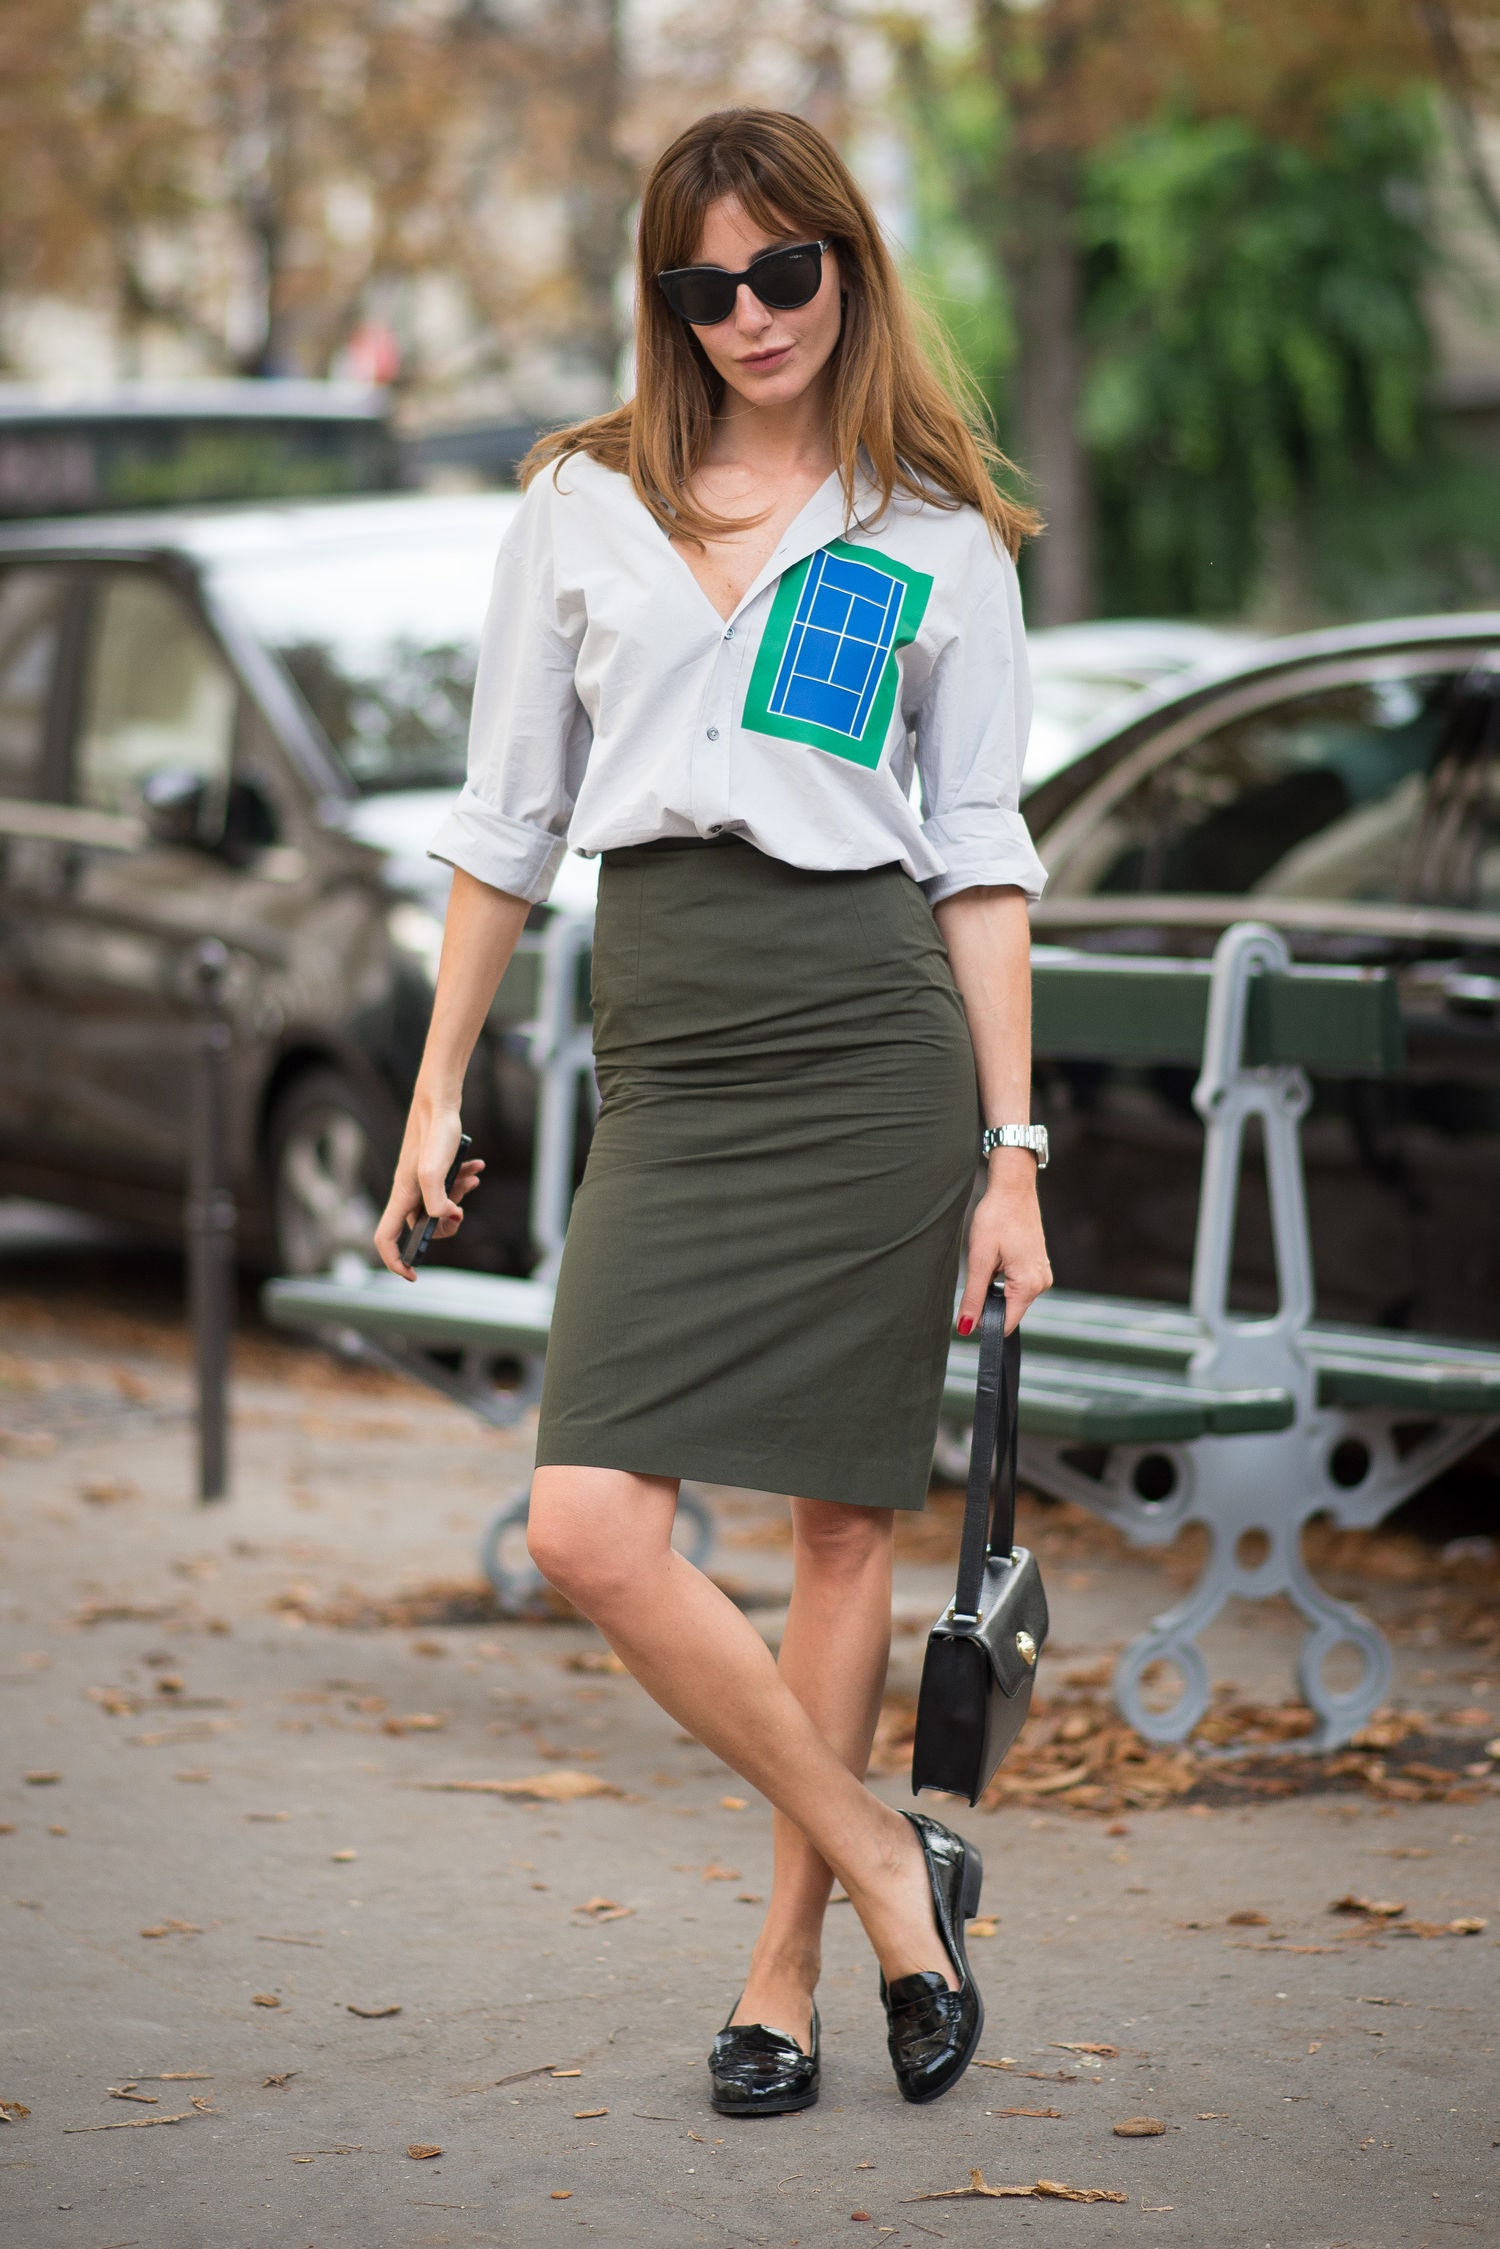 Chunky Loafers for Women with classic pencil skirt